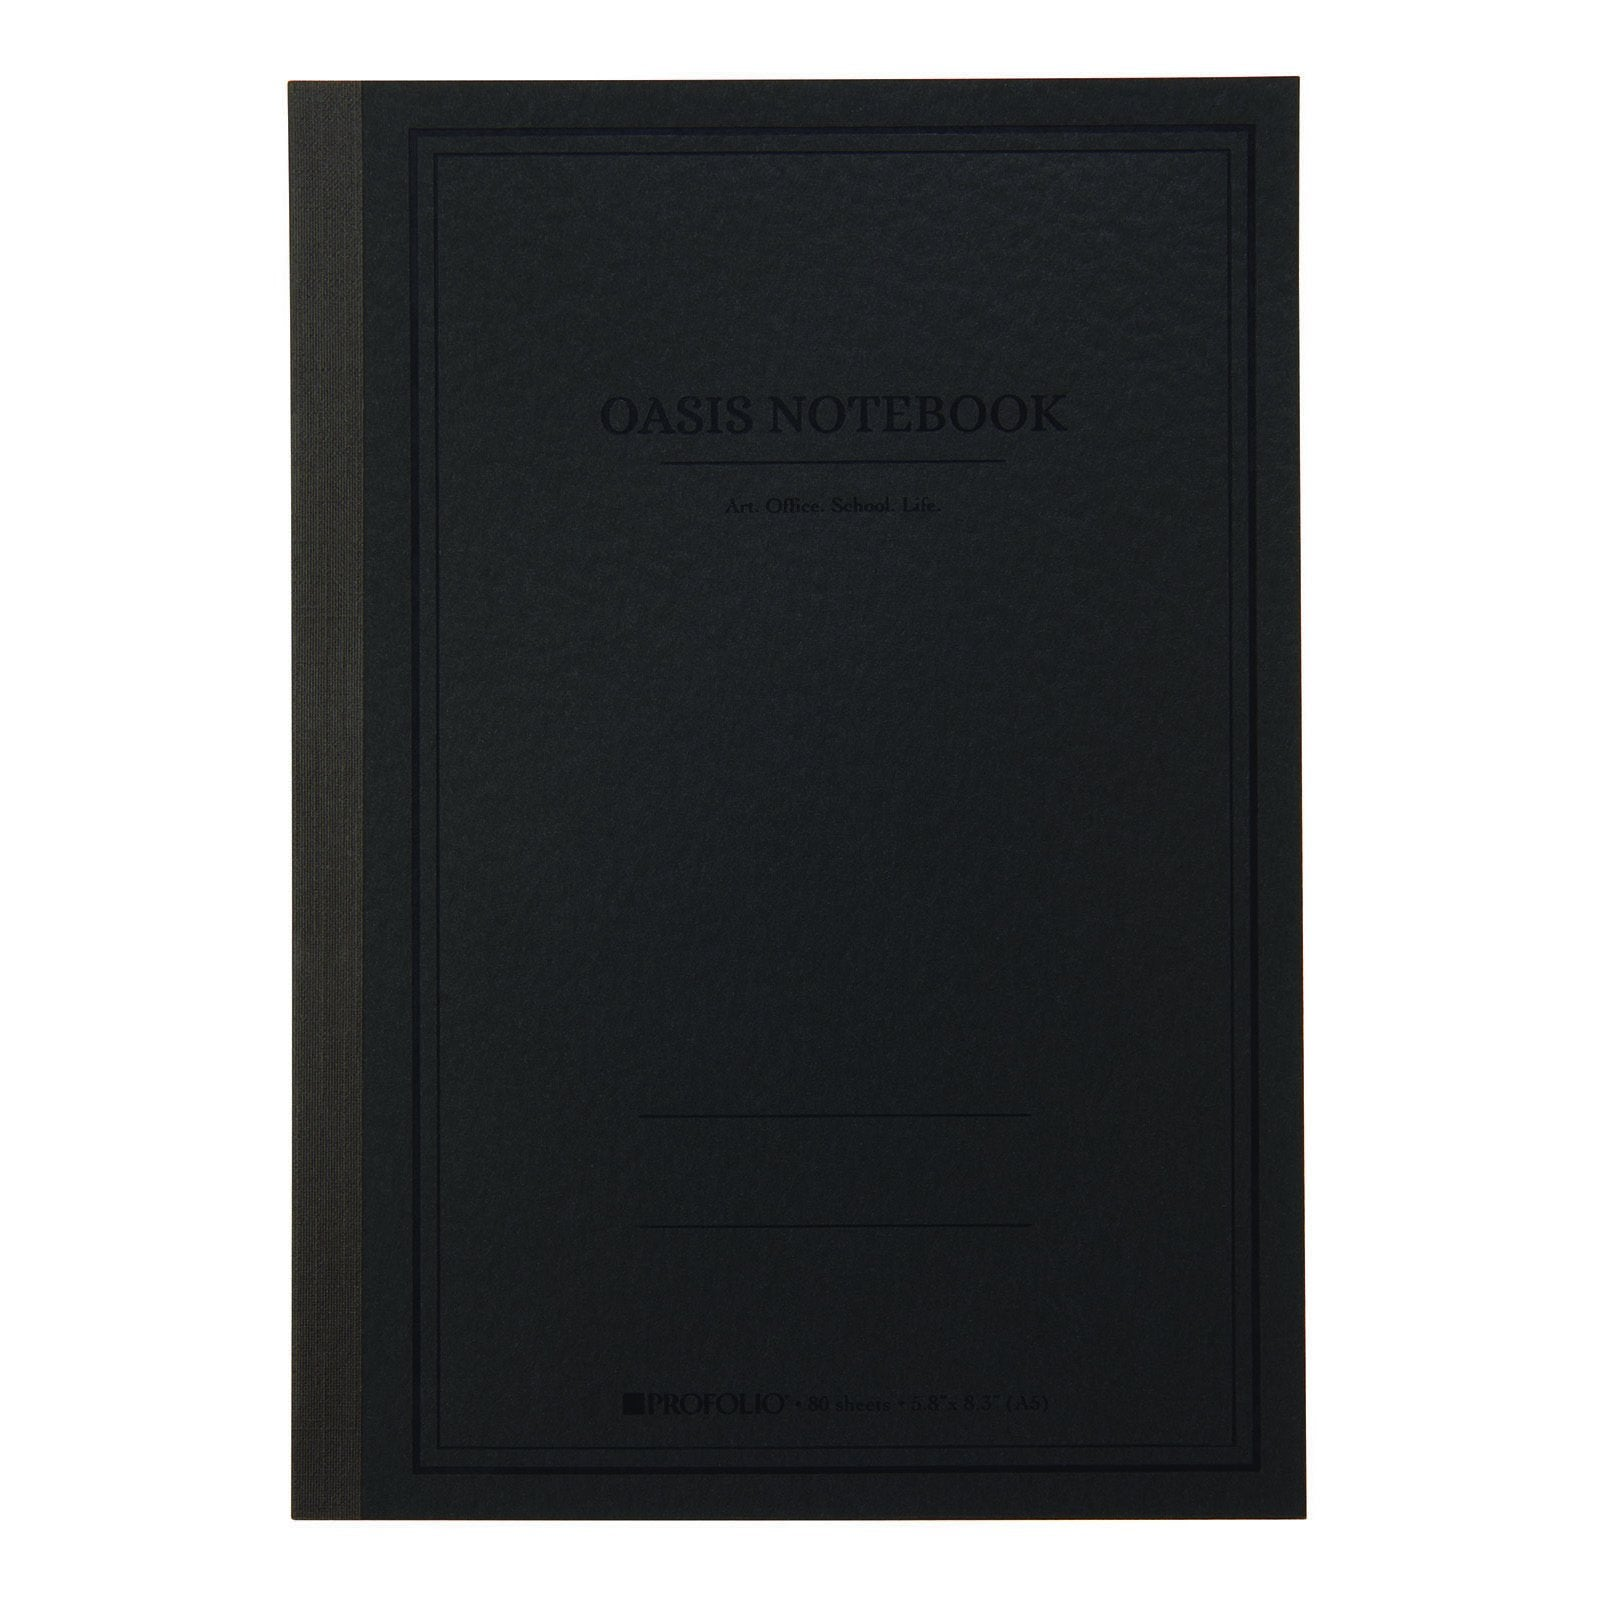 Itoya ProFolio Oasis Notebooks, Medium, Charcoal